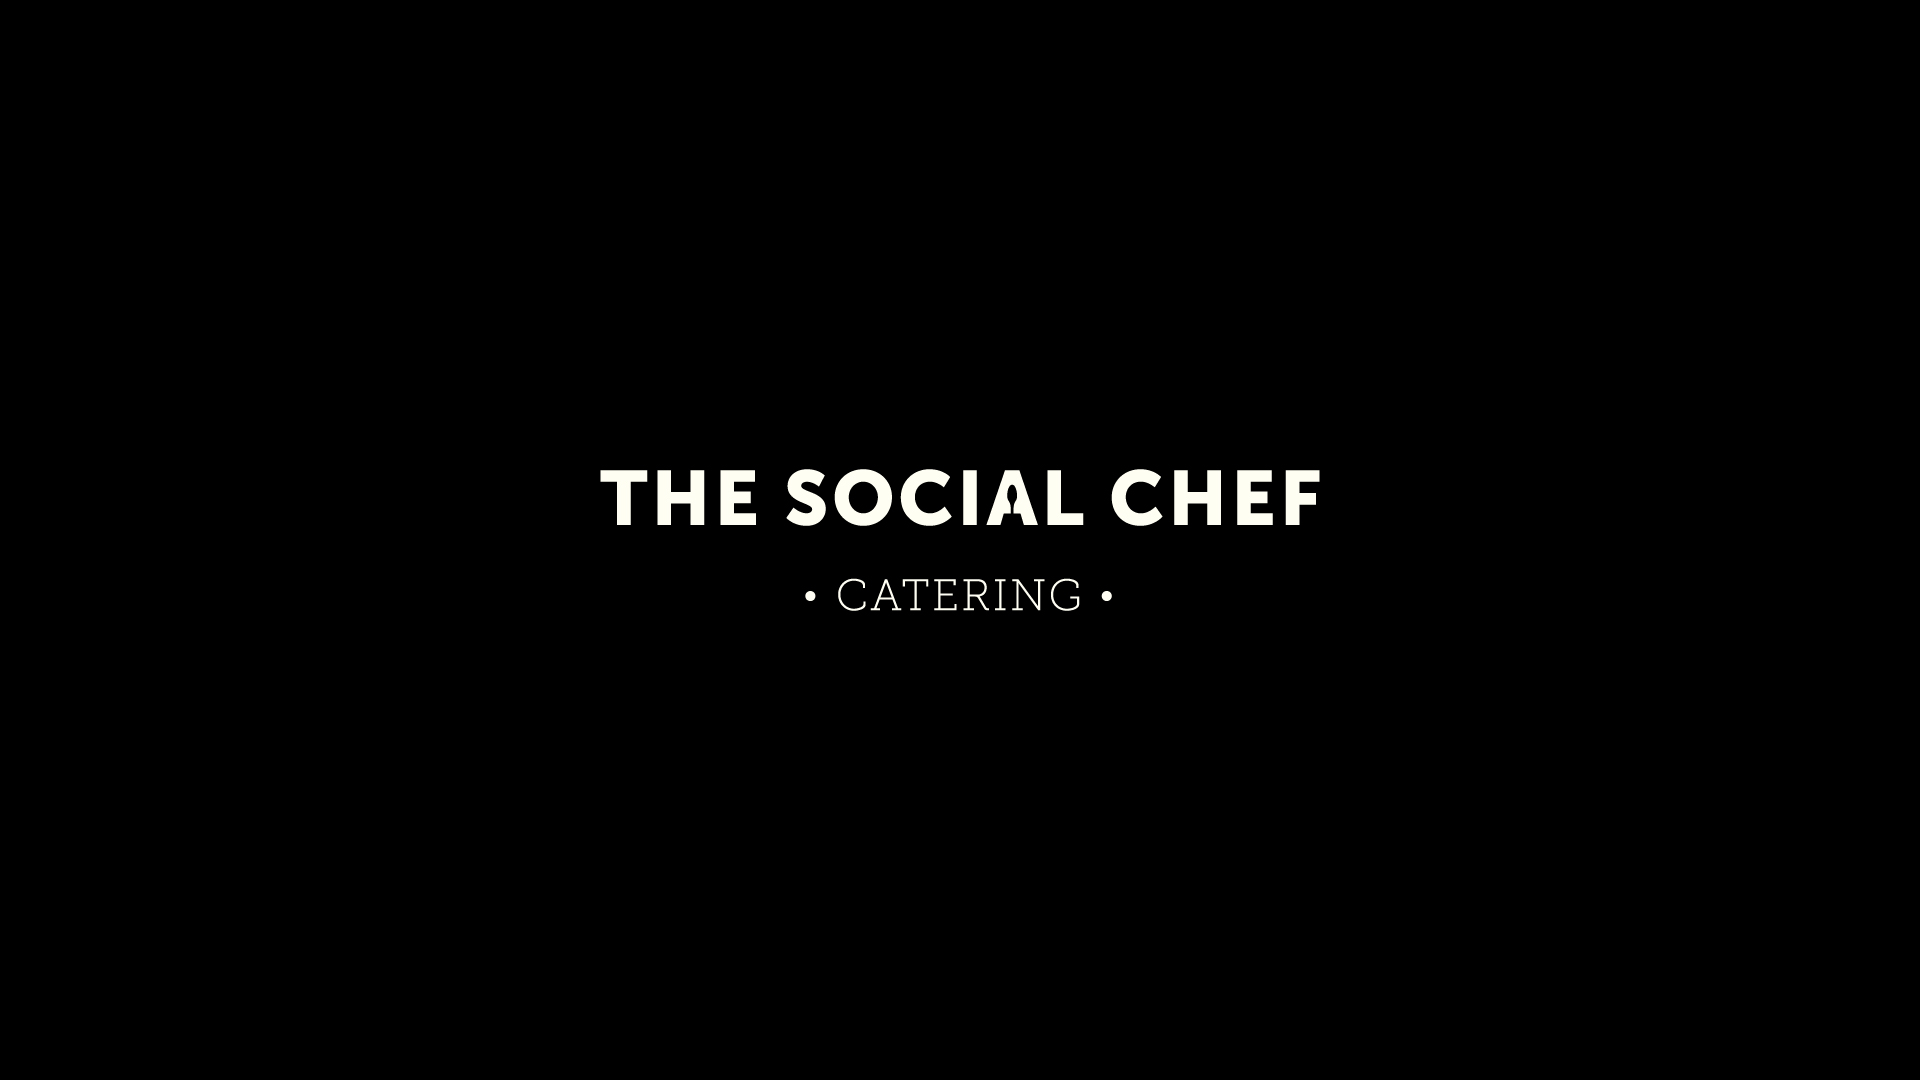 The Social Chef